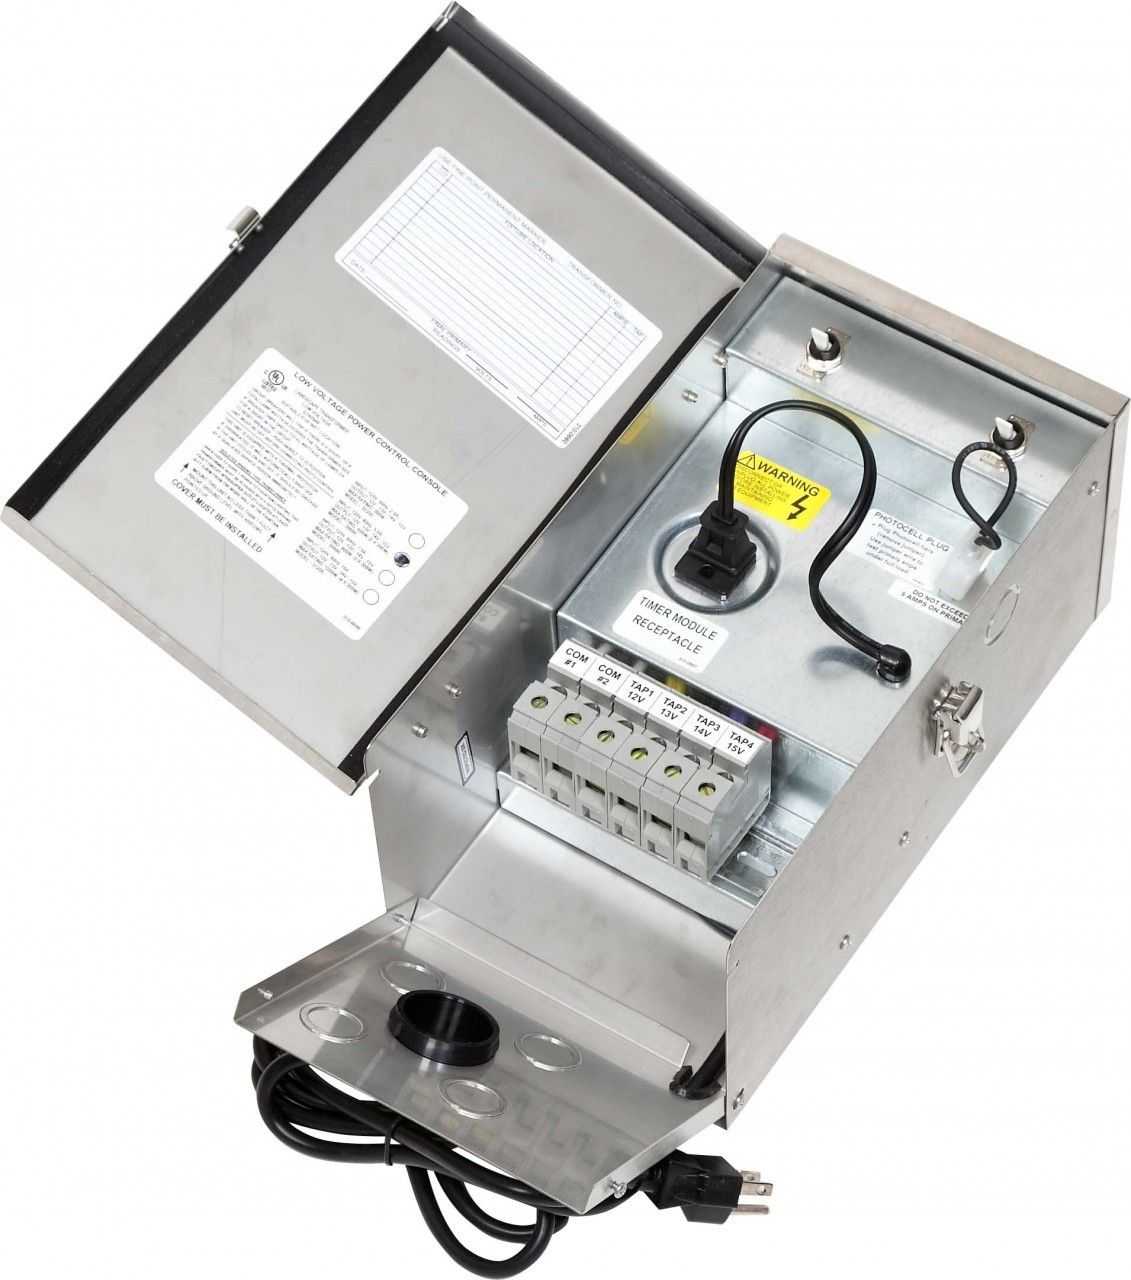 Best ideas about Landscape Lighting Transformer . Save or Pin Helpful Hints Low Voltage Landscape Lighting Transformers Now.